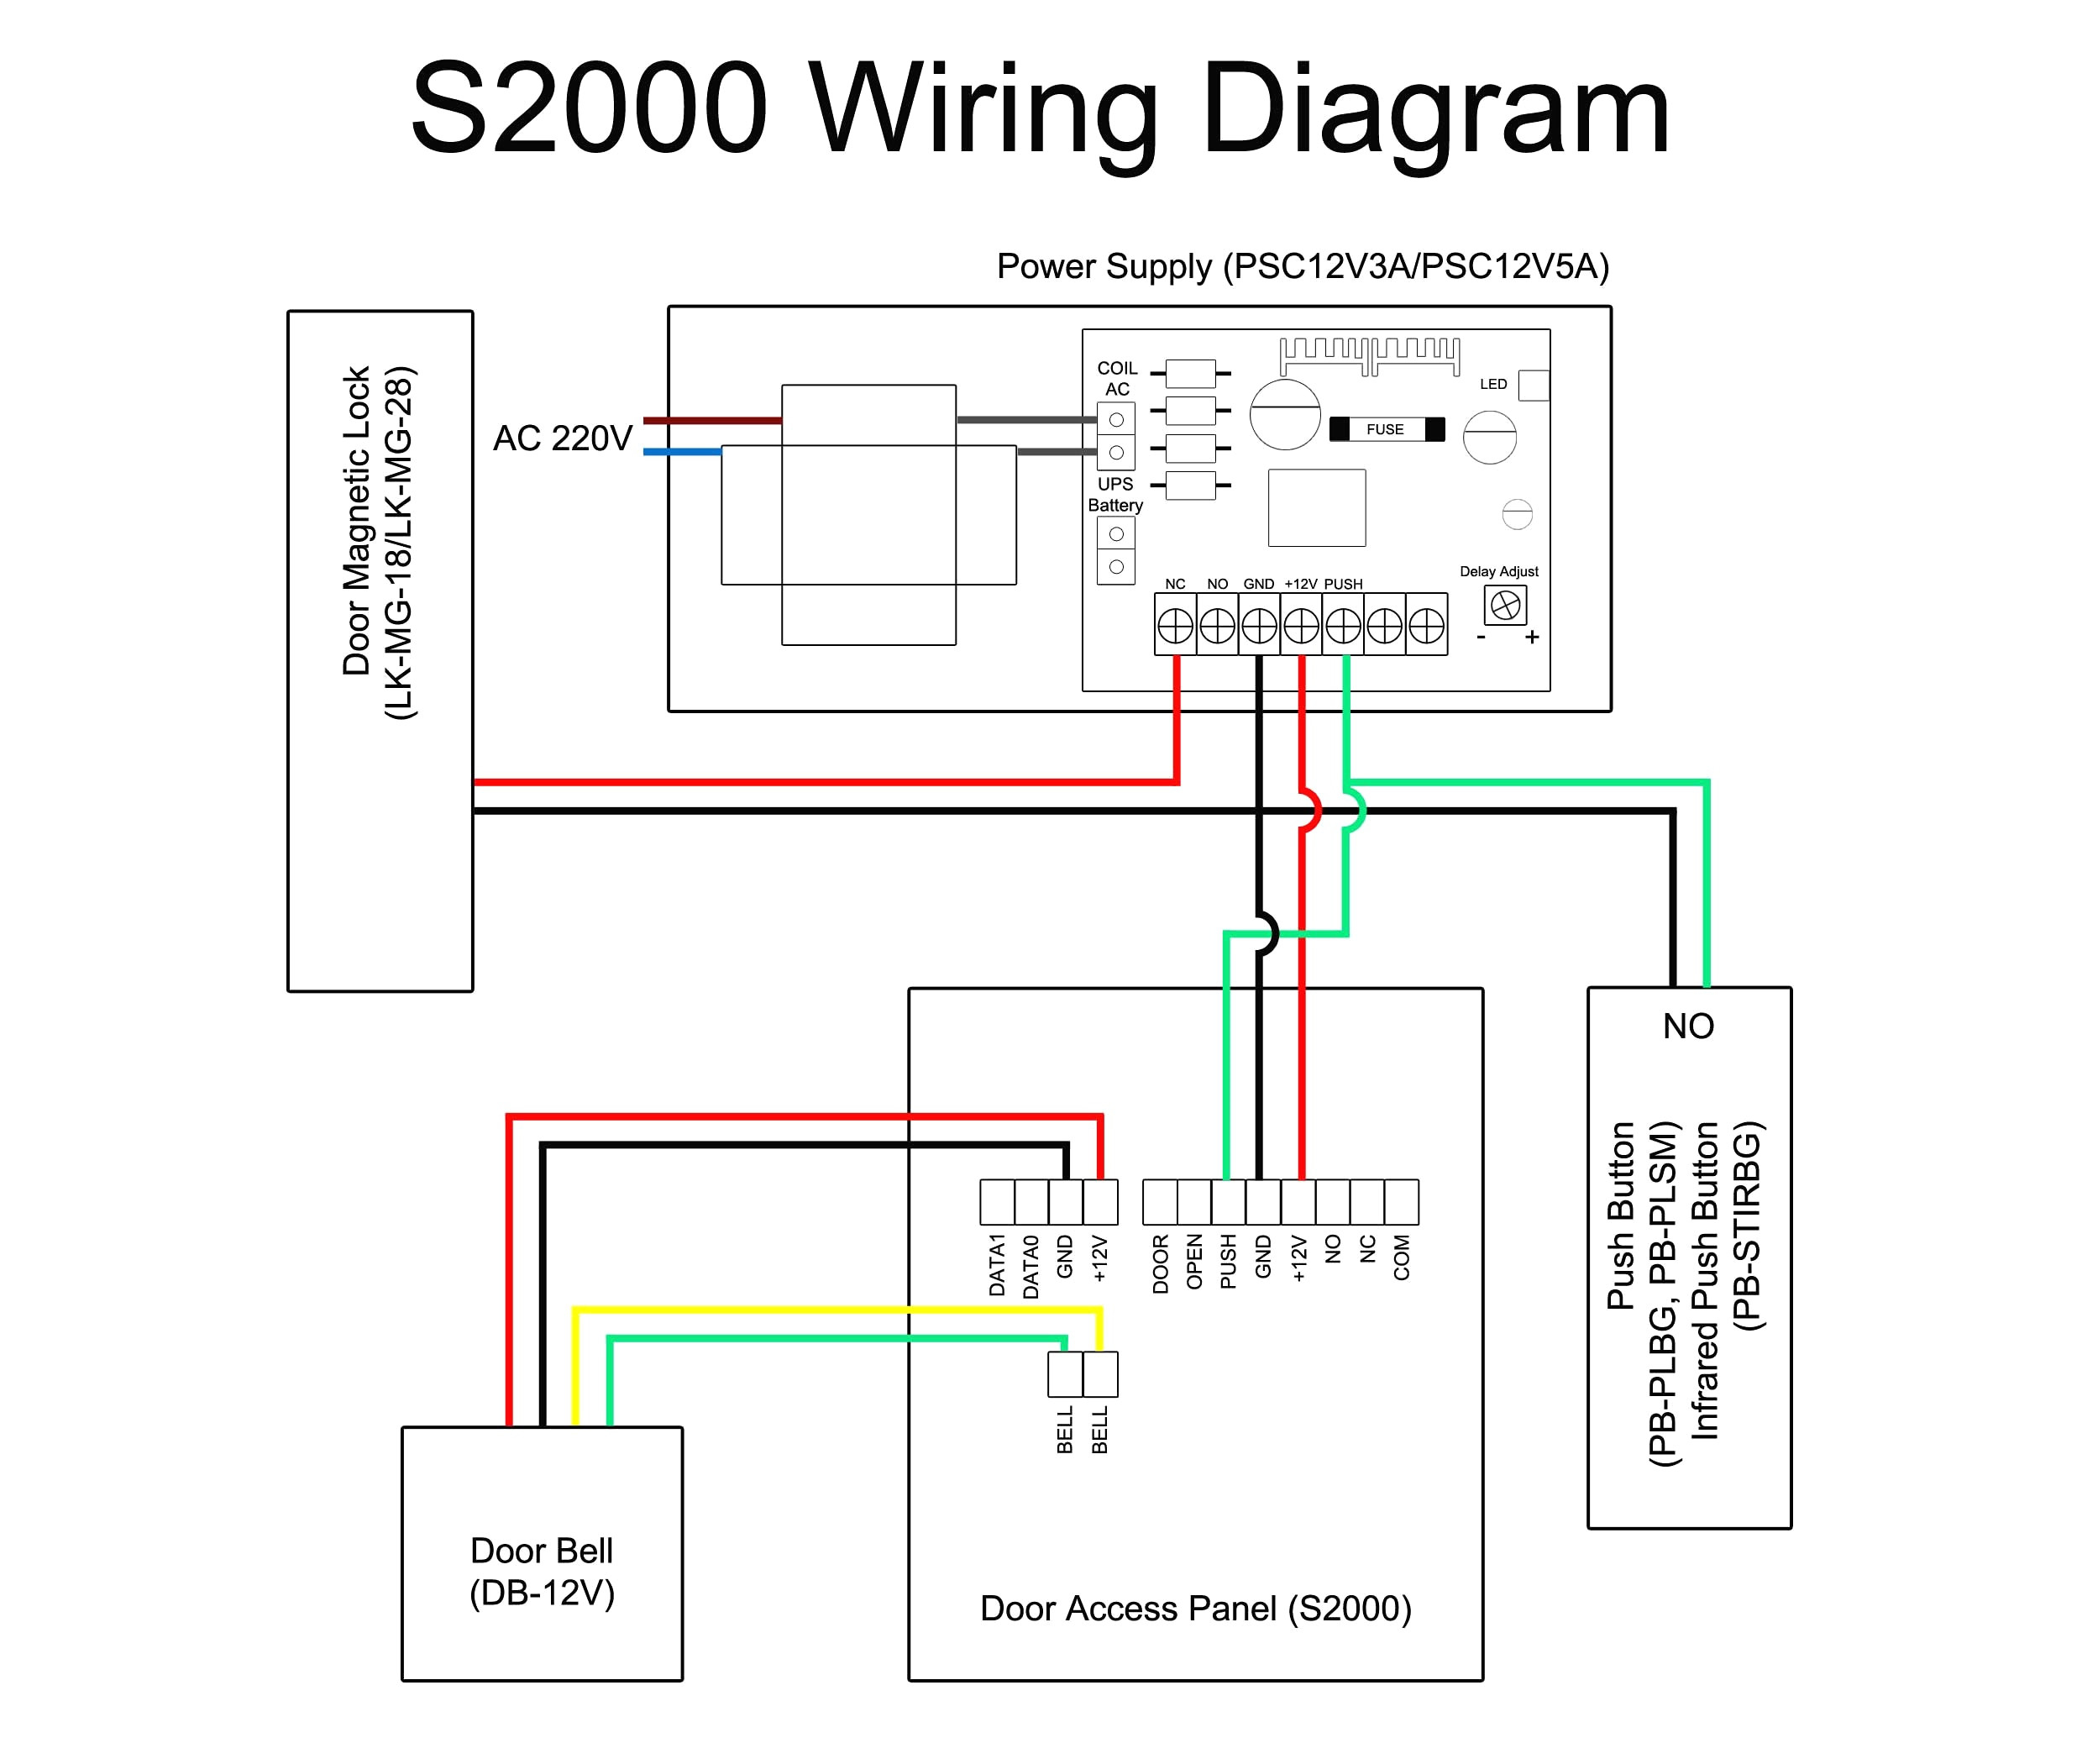 door access control system wiring diagram pdf Collection-door access control wiring diagram Download Wiring Diagram Security Alarm New Samsung Security Camera Wiring 20-g